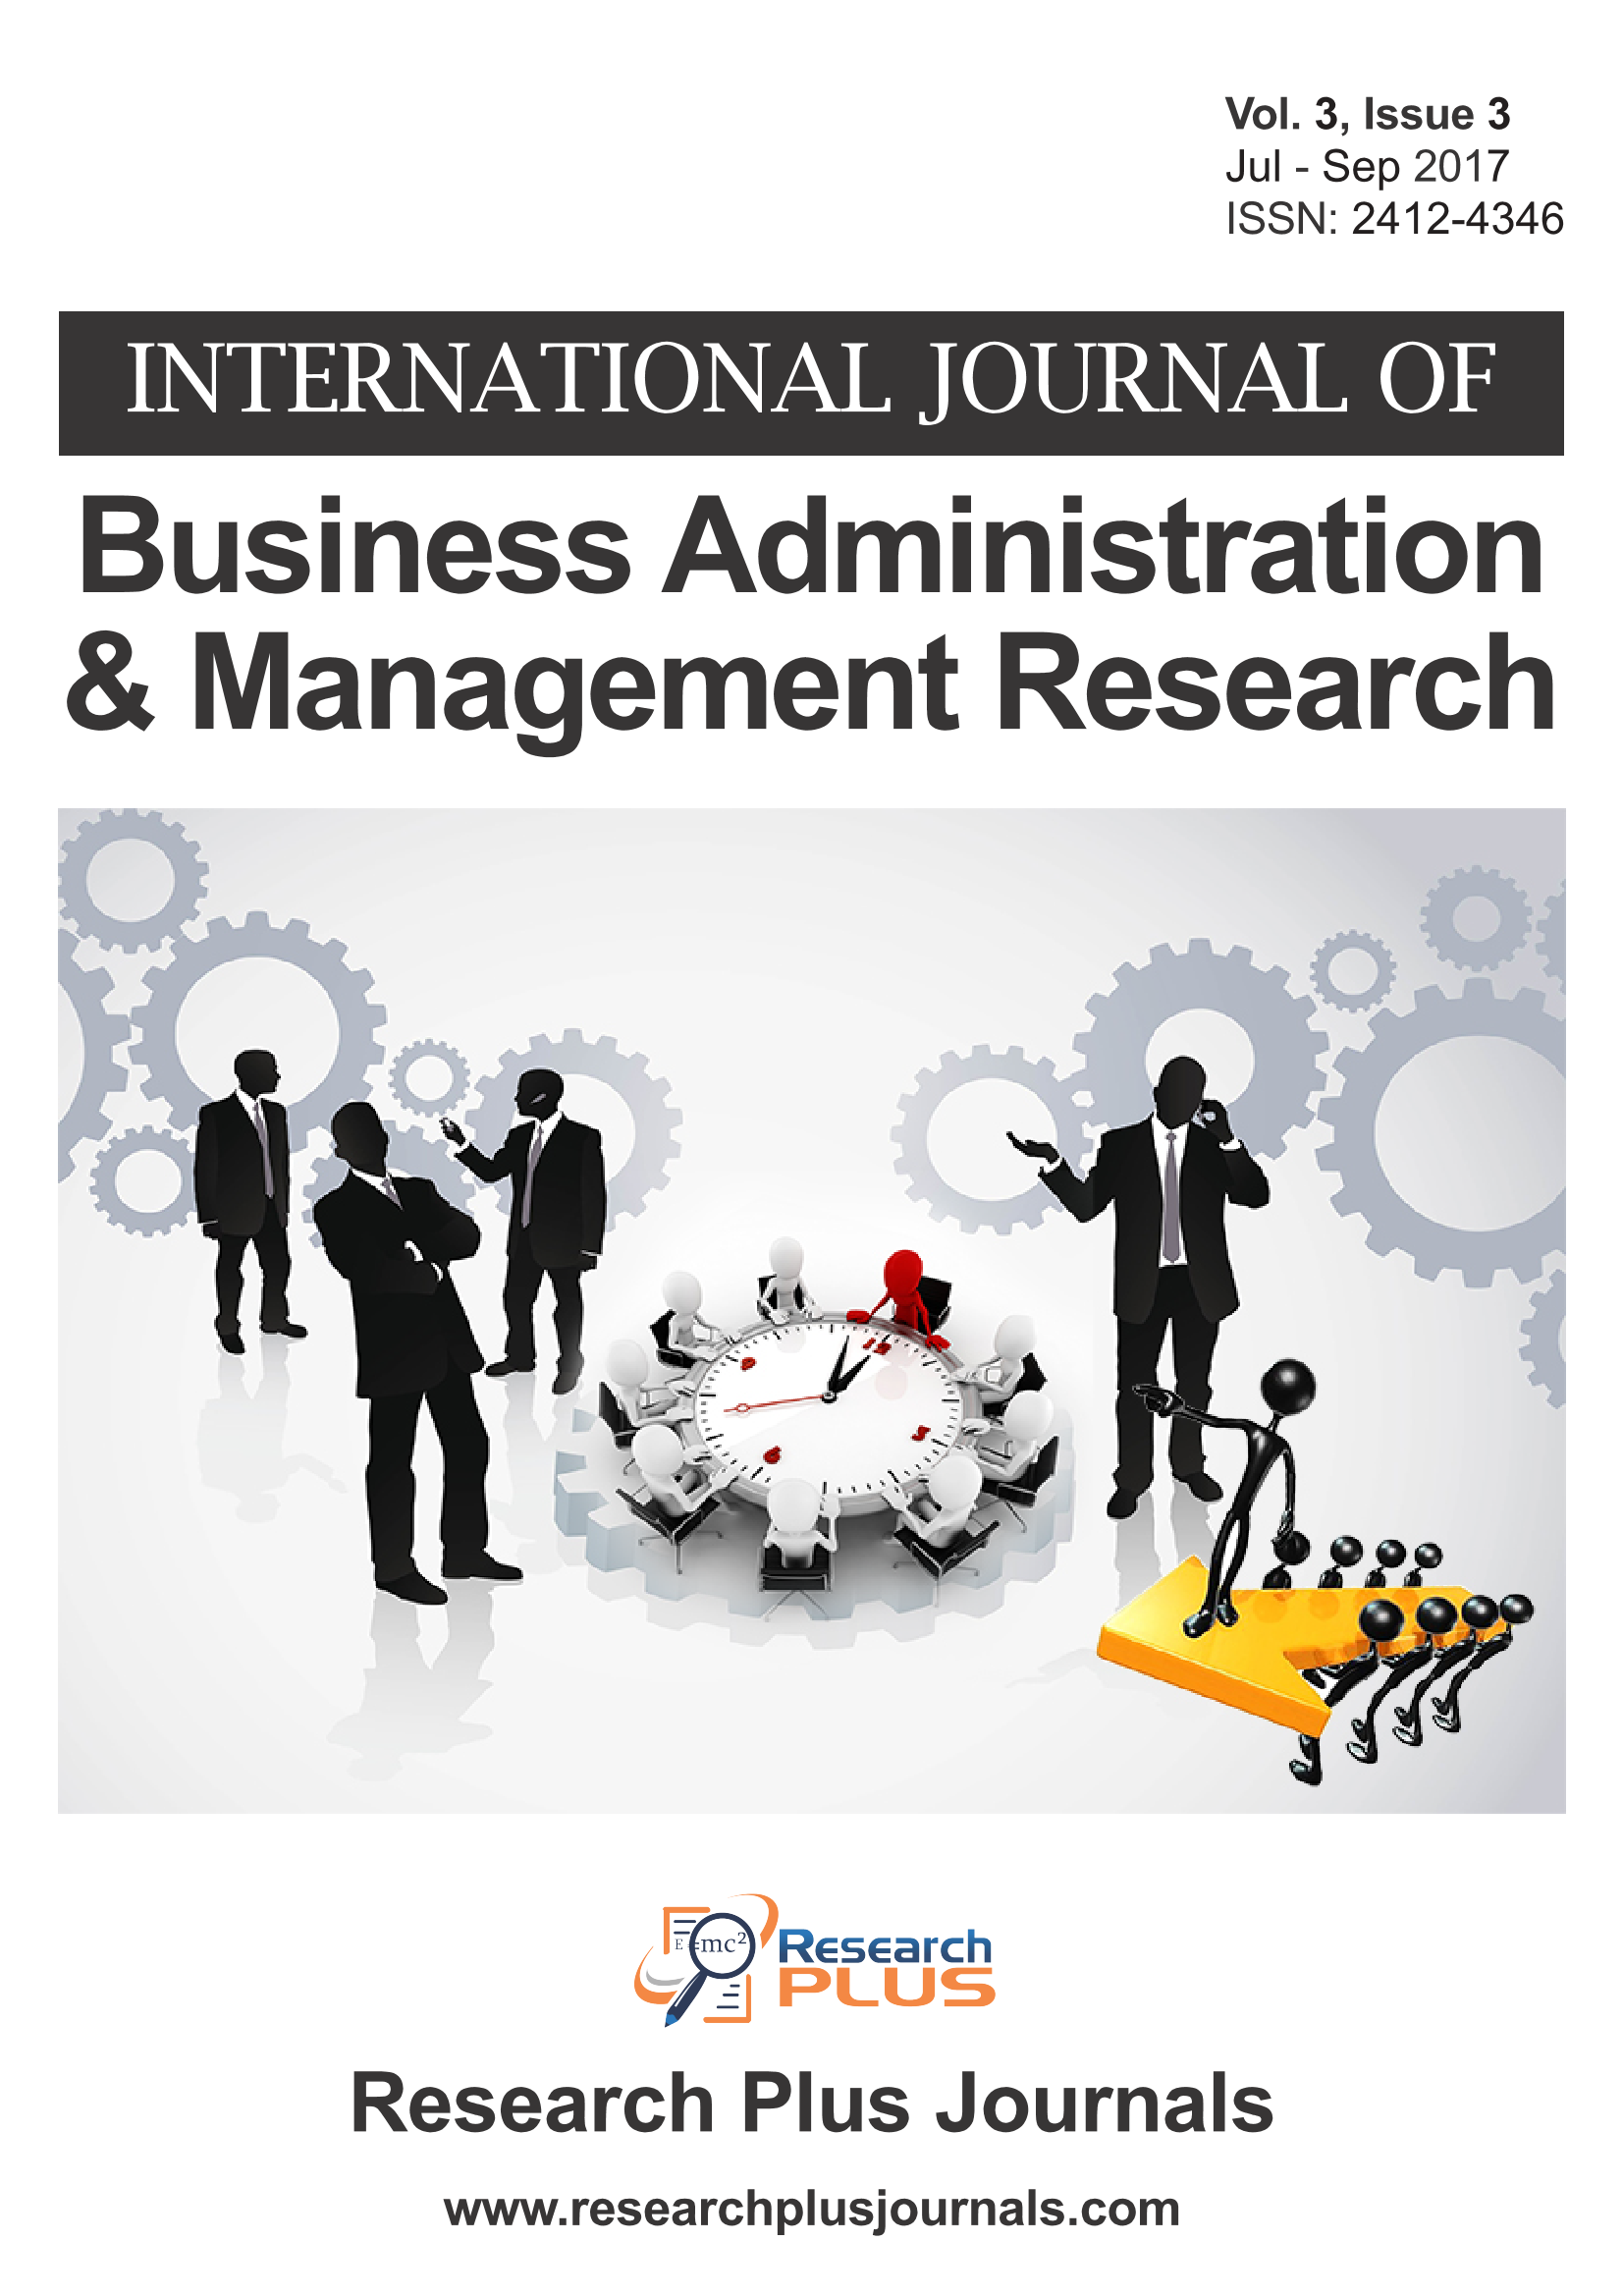 Volume 3, Issue 3, International Journal of Business Administration and Management Research (IJBAMR) (Online ISSN: 2412-4346)